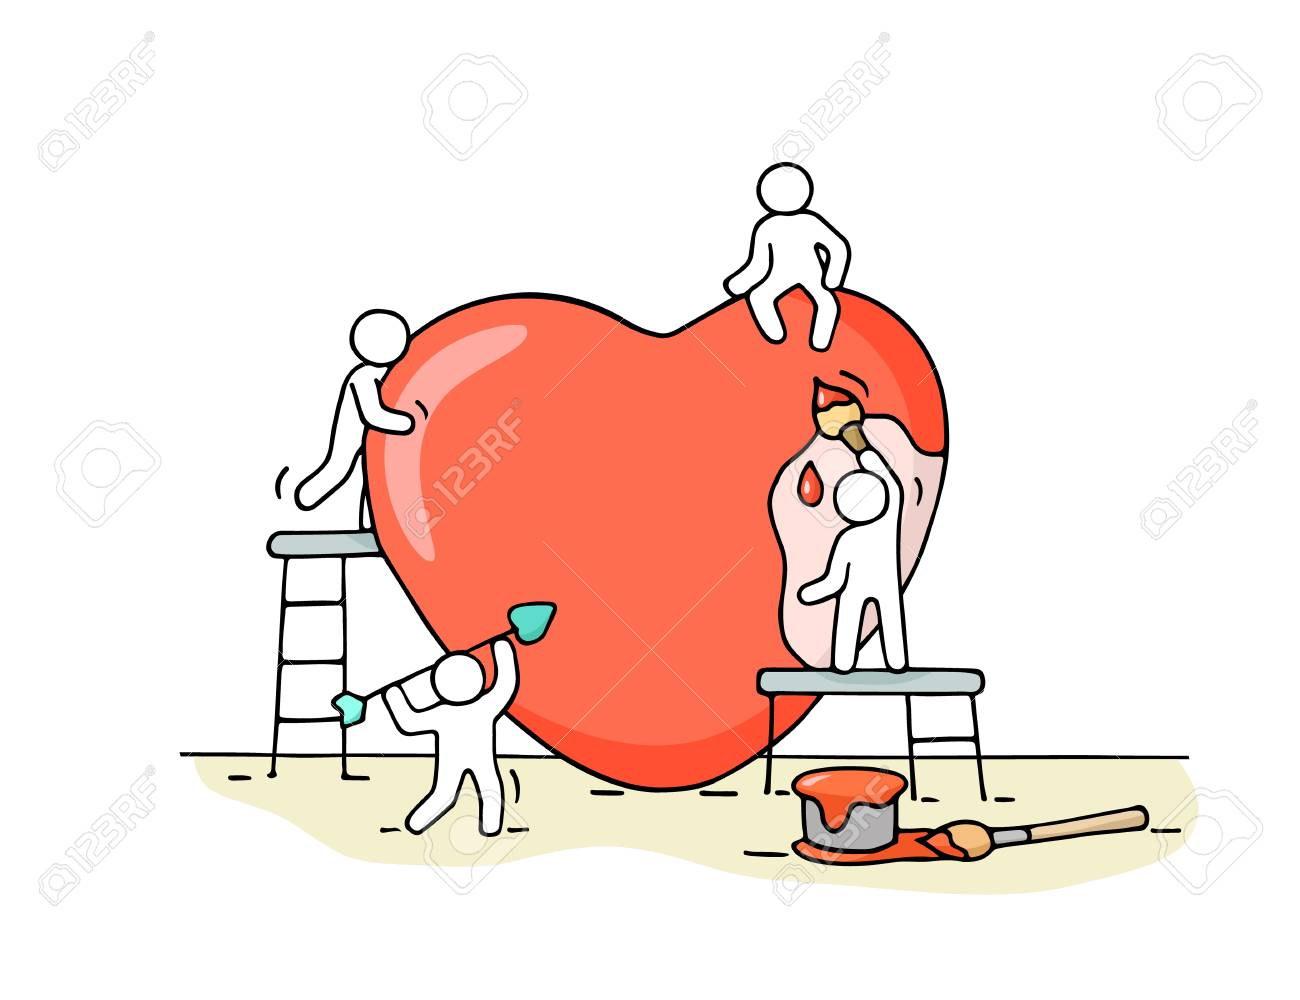 Sketch of working little people with big love sign. - 96448431